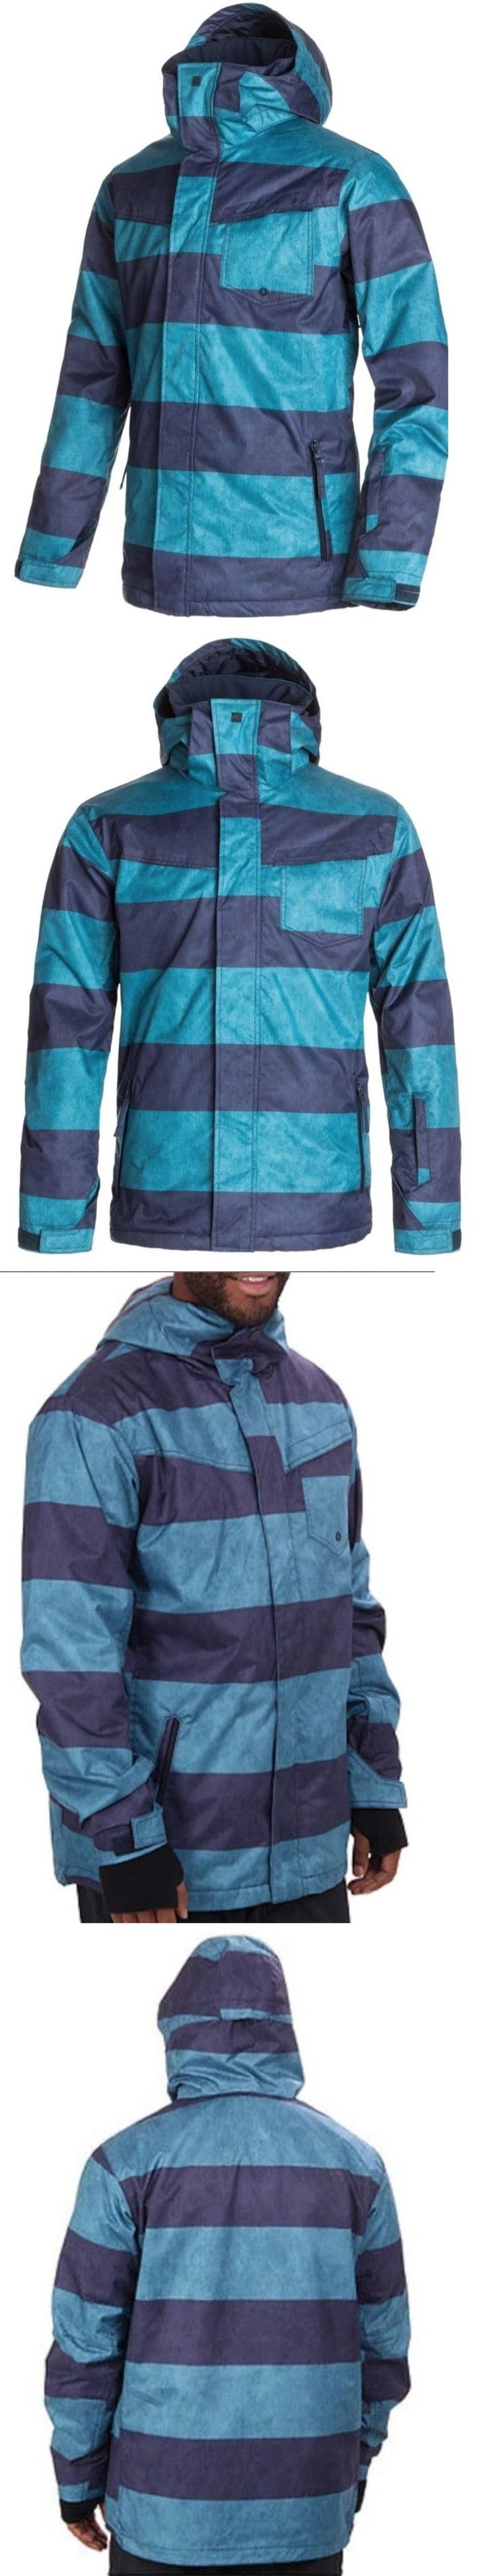 Coats and Jackets 26346: New Quiksilver 10K Mens Snow Jacket Ski Blue Striped Size S M Xxl -> BUY IT NOW ONLY: $38.99 on eBay!